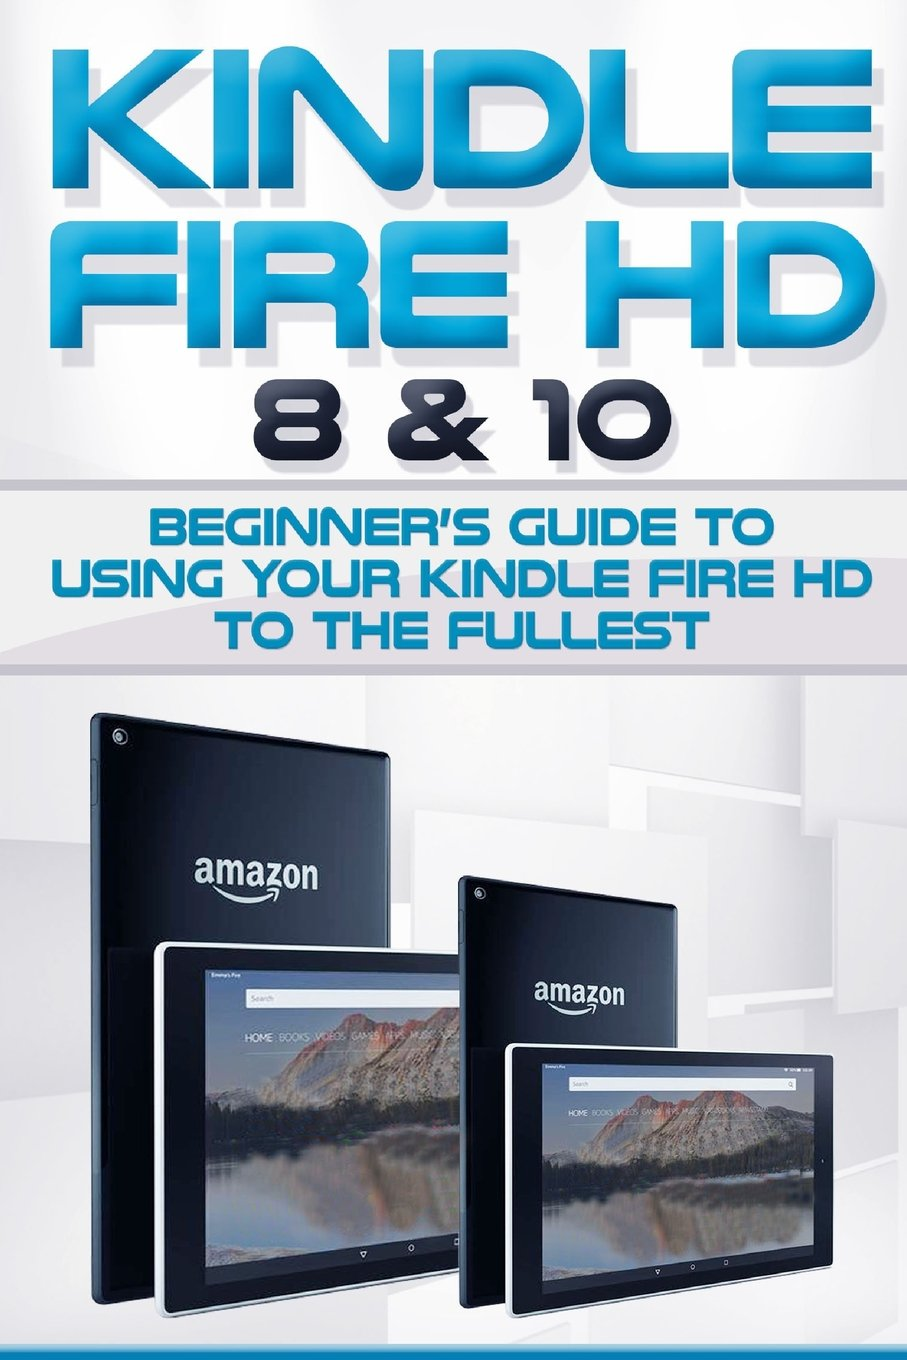 Kindle Fire HD 8 & 10: Beginner's Guide to Using Your Kindle Fire HD to the Fullest. (Tips and Tricks, Kindle Fire HD 8 & 10, New Generation) pdf epub